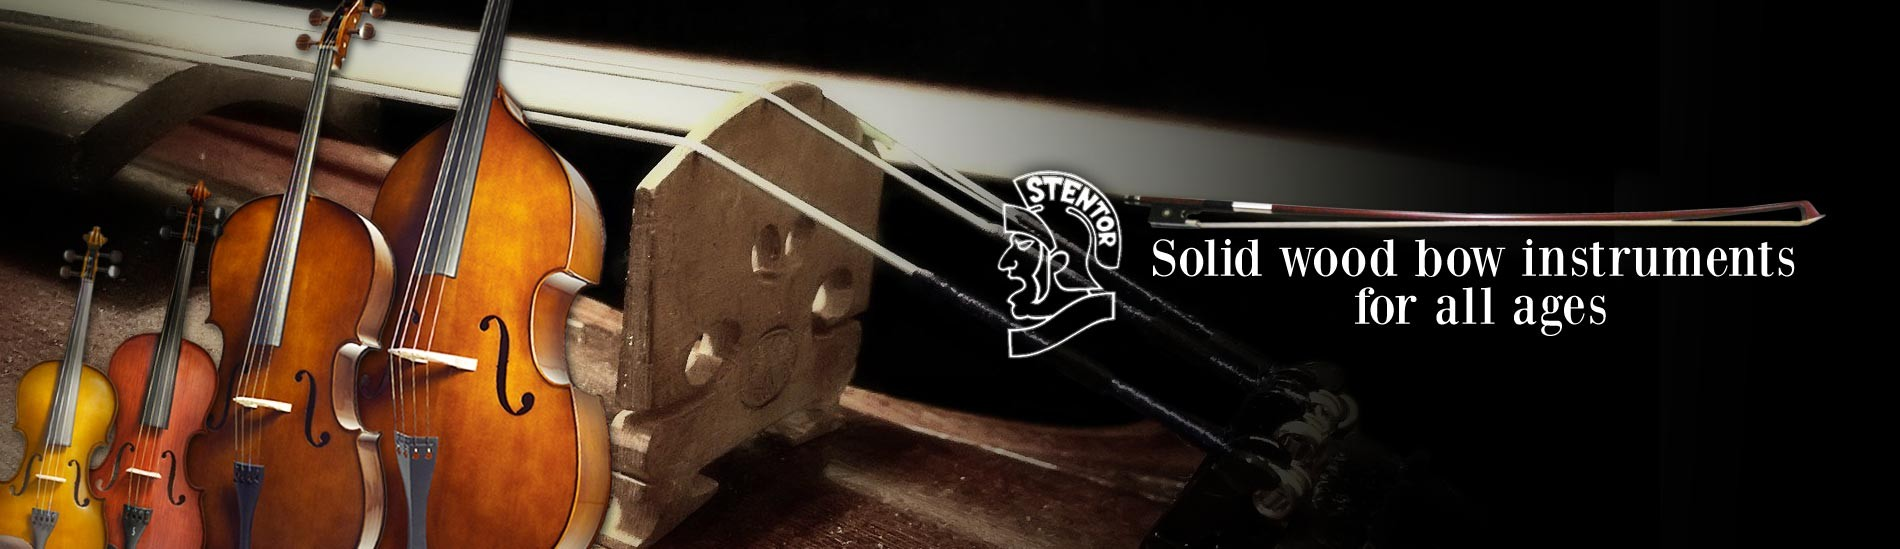 Stentor - Solid wood bow instruments for all ages